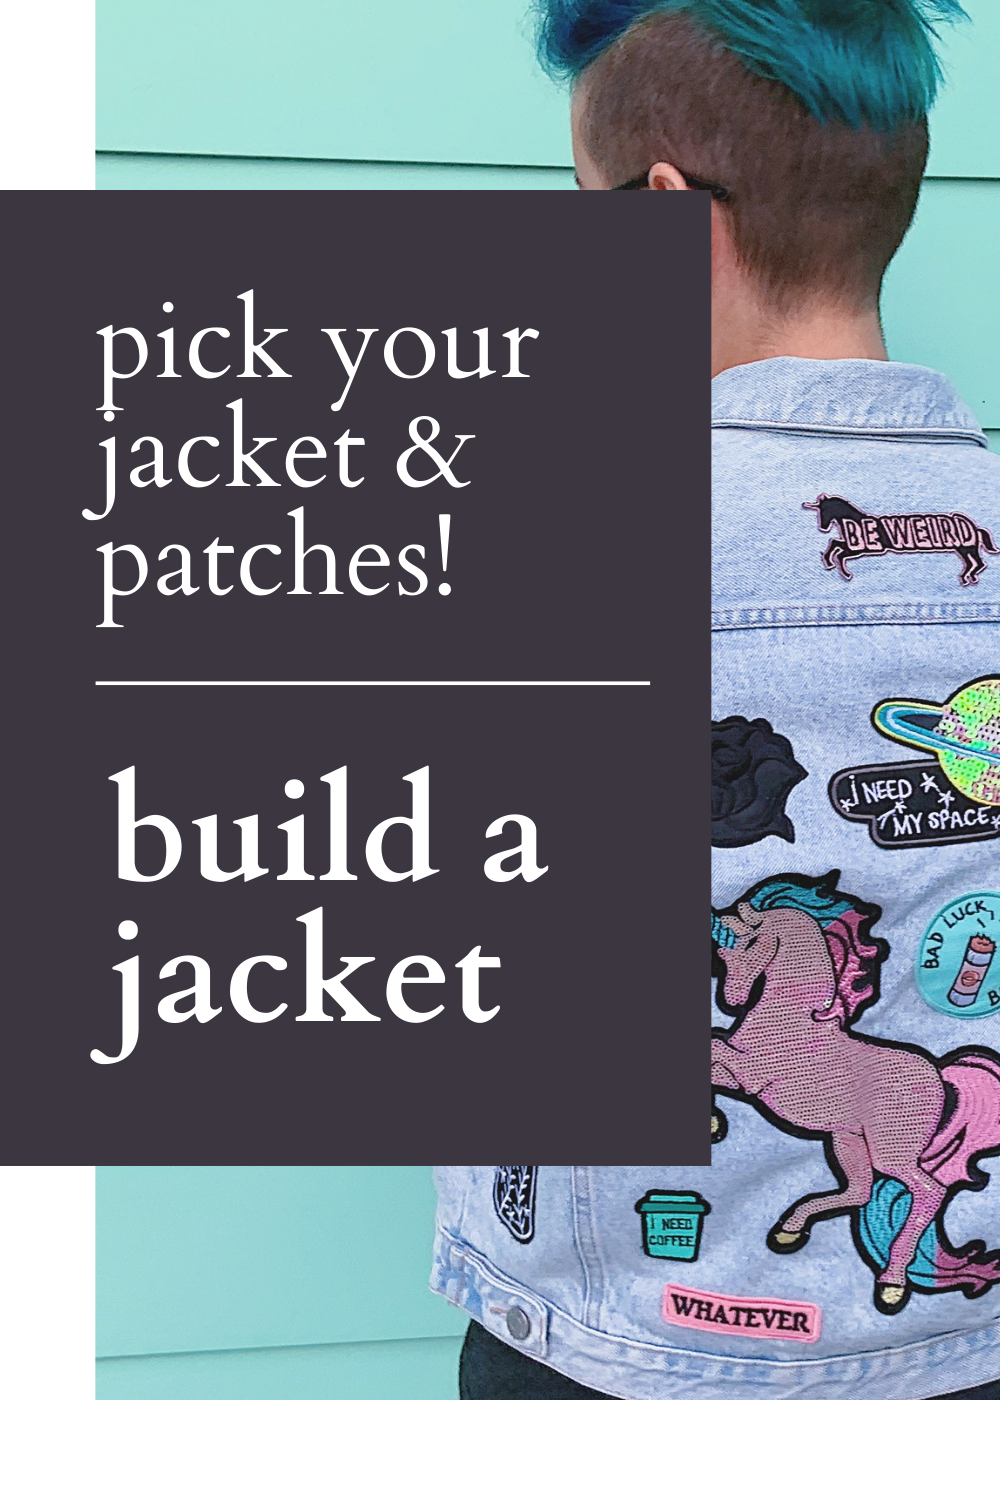 Pick your jacket and patches! Build a jacket & create a custom statement outfit! Thrifted & Vintage